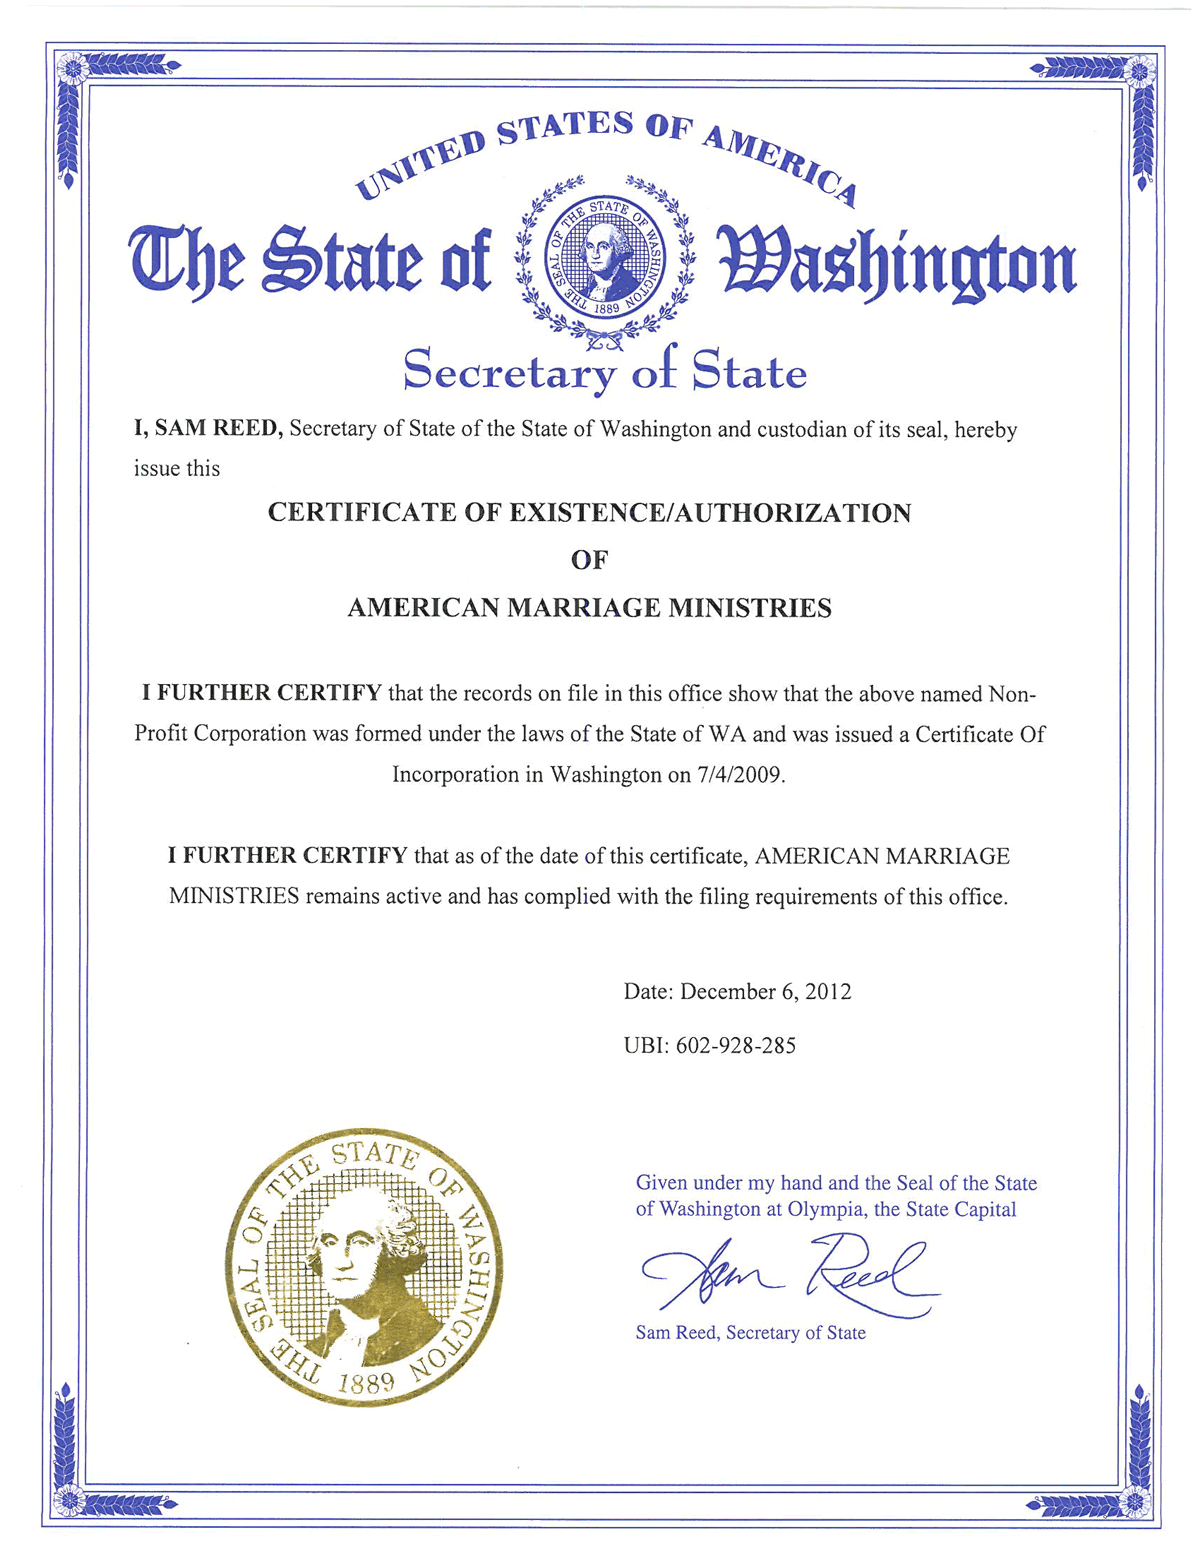 American marriage ministries washington certificate of existence